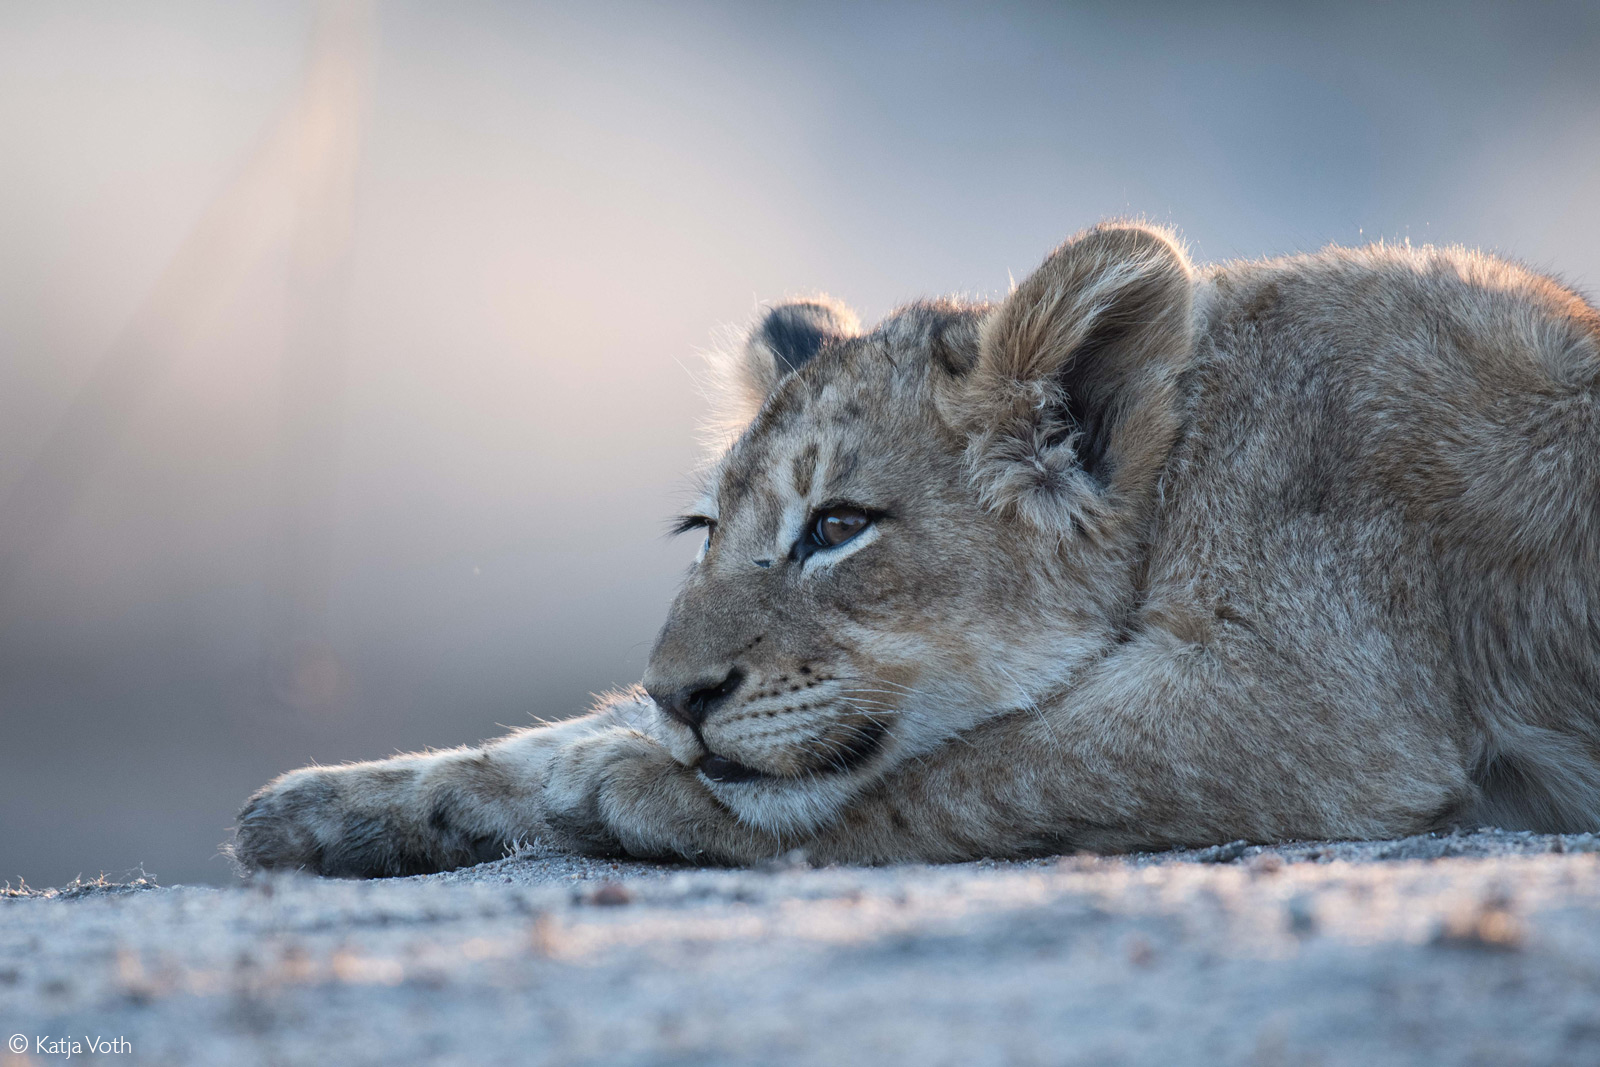 Lion cub resting in the late afternoon sun. Greater Kruger National Park, South Africa © Katja Voth